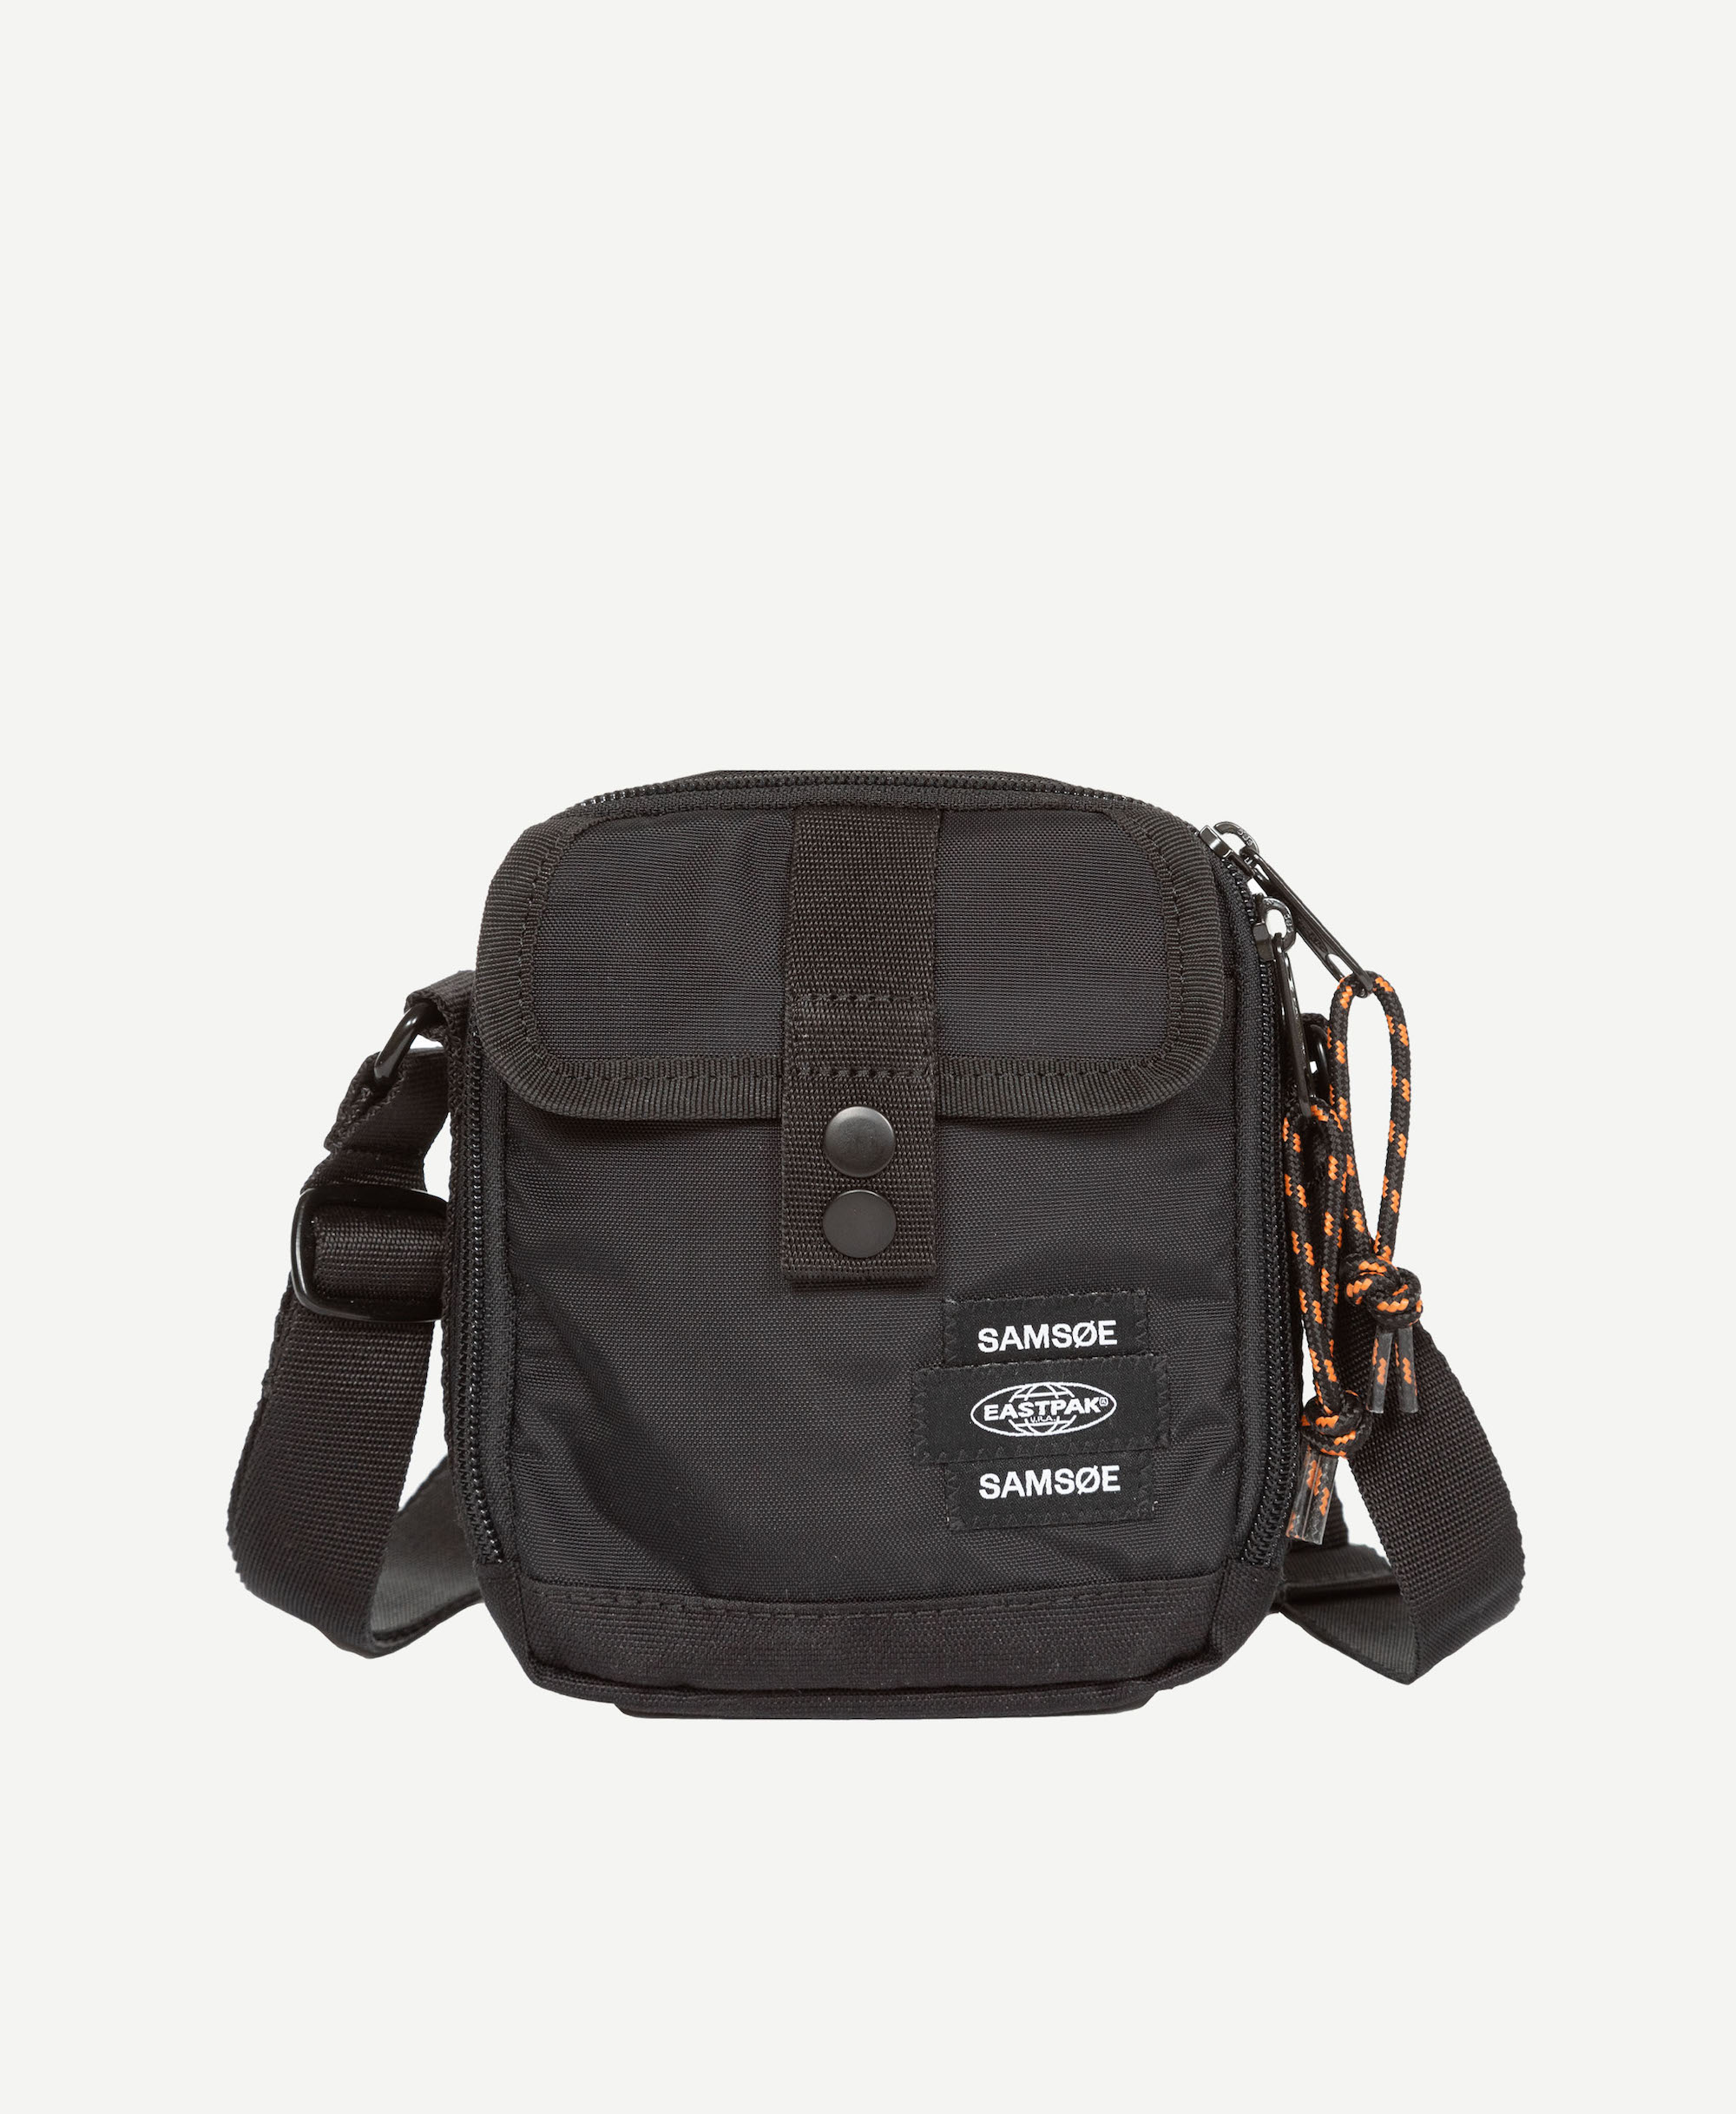 SAMSOE SAMSOE_SS21_EASTPAK_CROSSBODY BAG 13052_BLACK